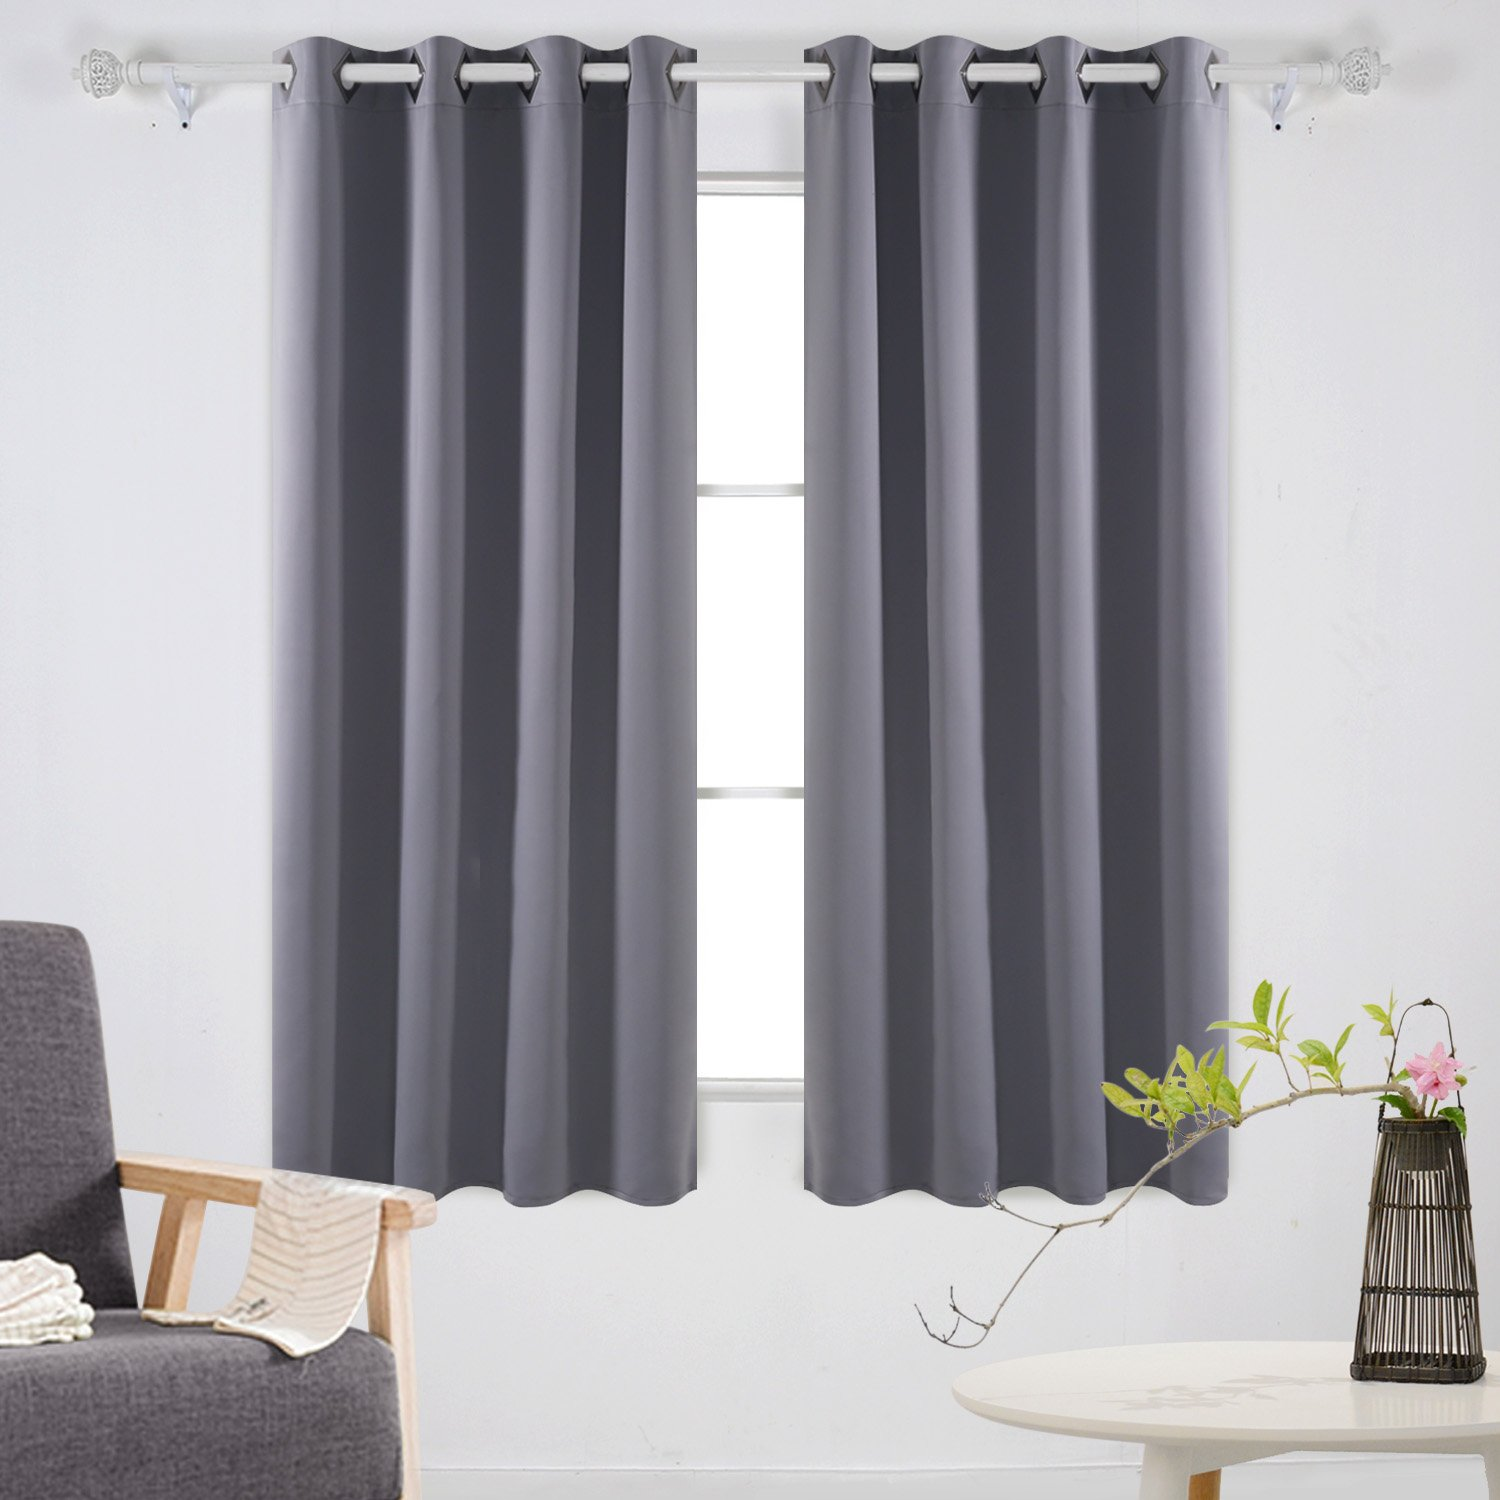 of target full under walmart window ideas cheap darkening panels design room curtain amazon kohls size living thermal curtains modern kitchen sheer